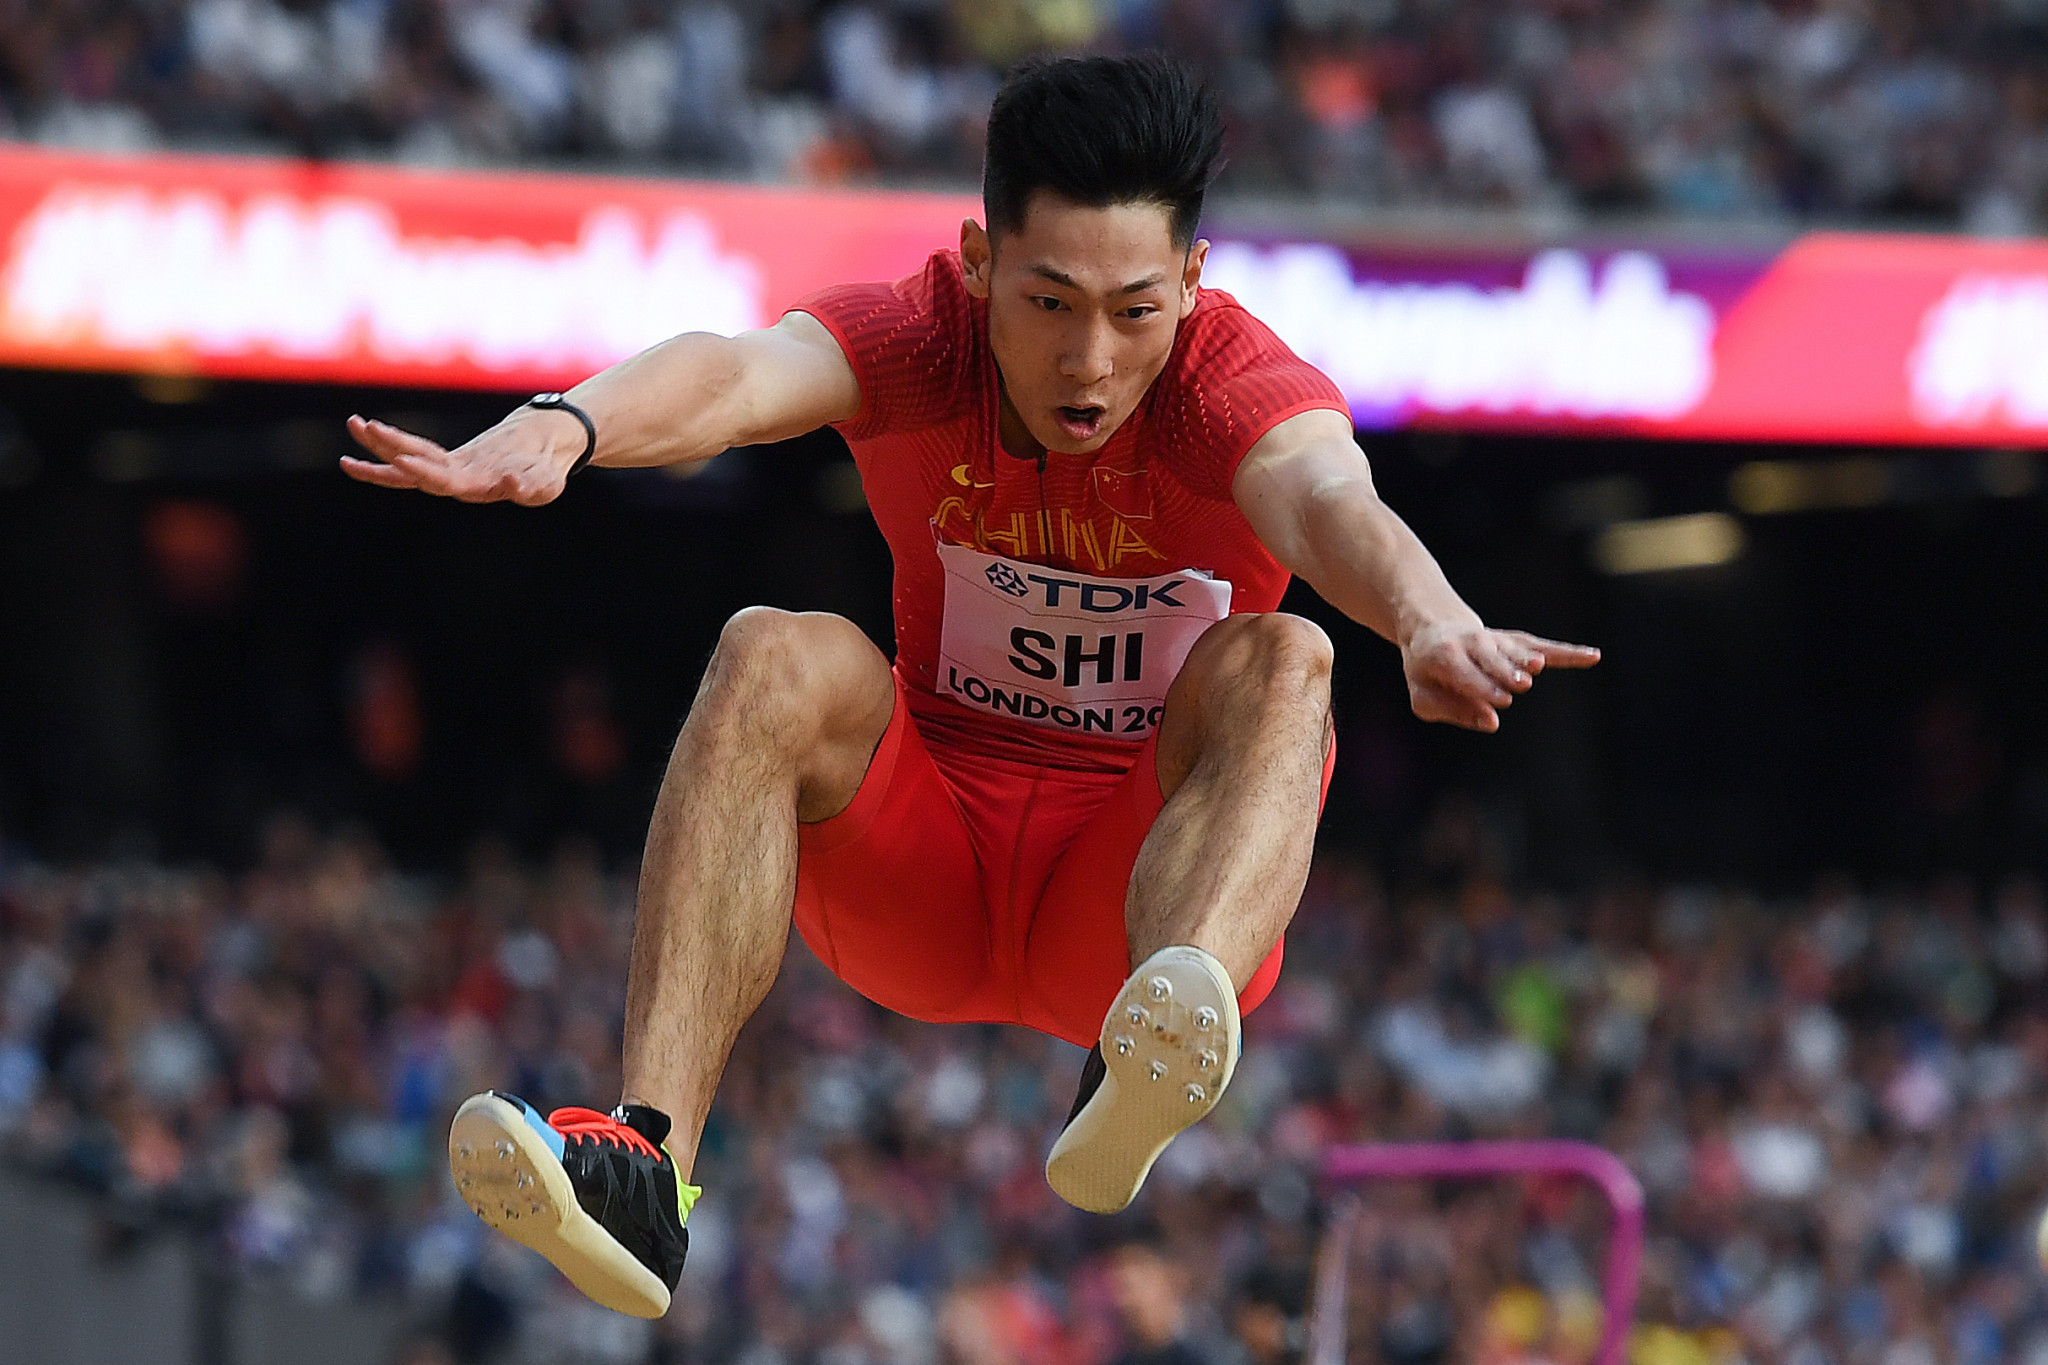 Shi Yuhao finished sixth at the World Championships in London in 2017 ©Getty Images